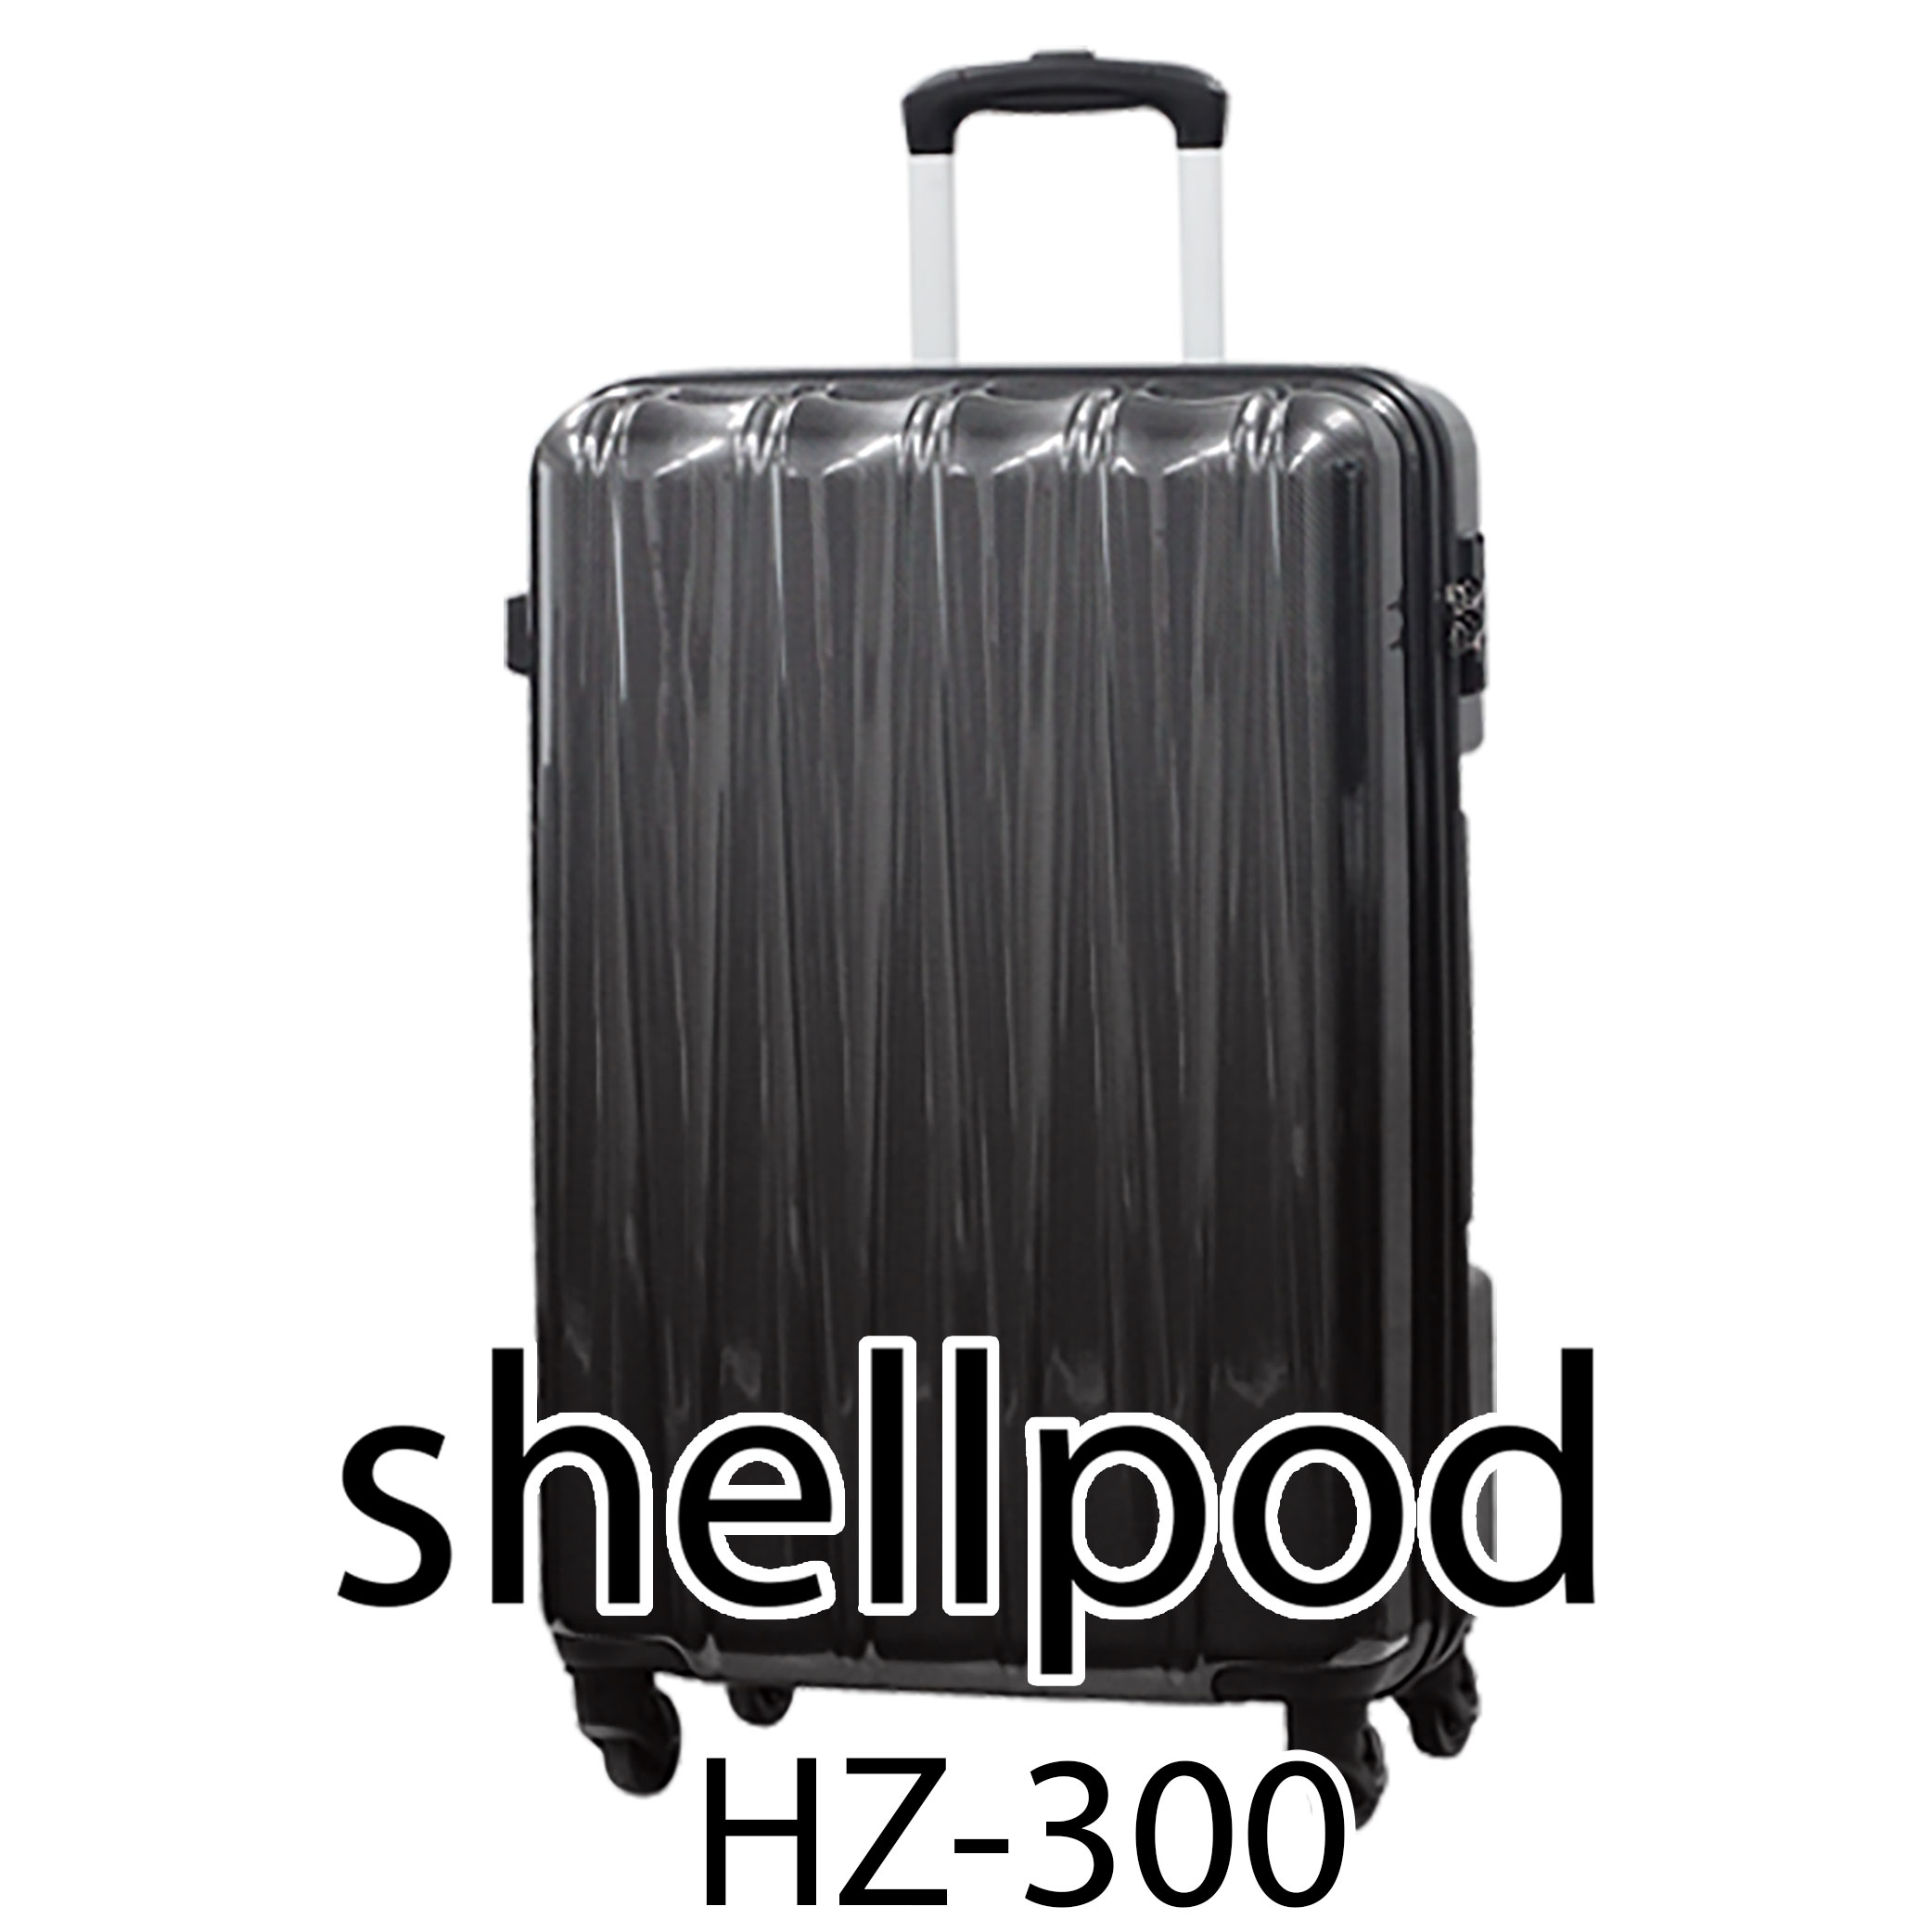 shellpod HZ-300